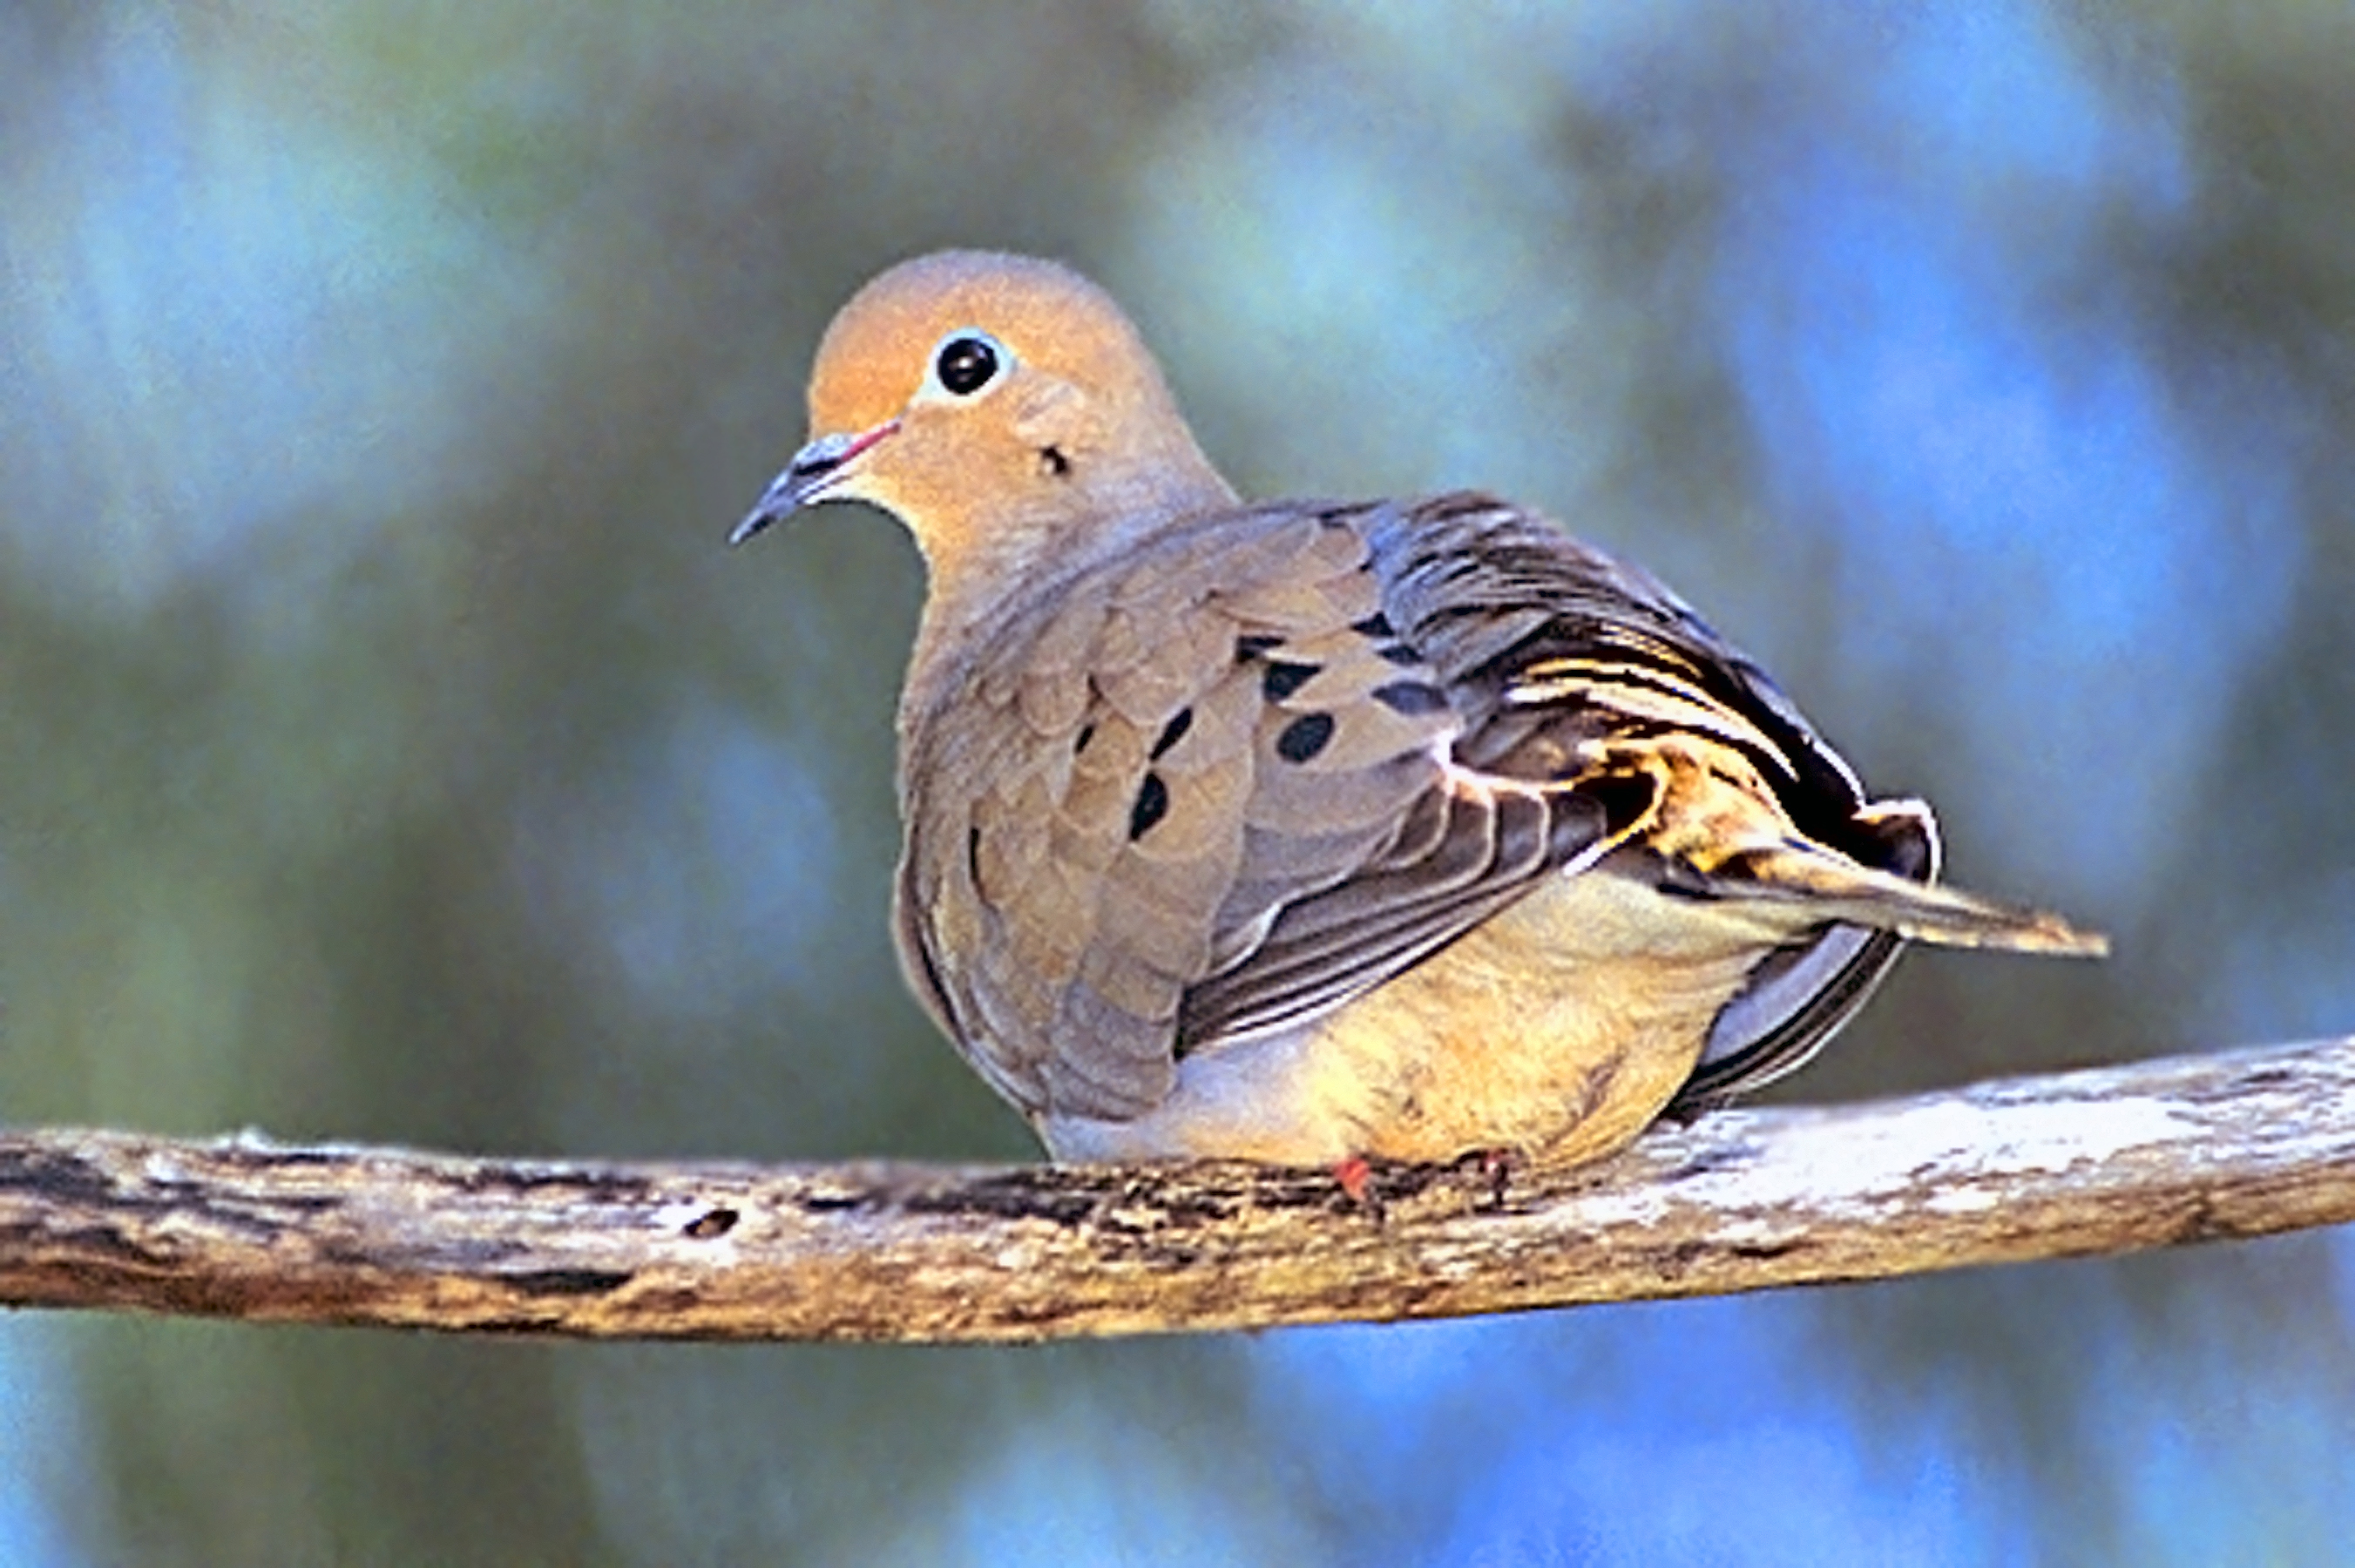 File:Mourning Dove Perched.jpg - Wikimedia Commons